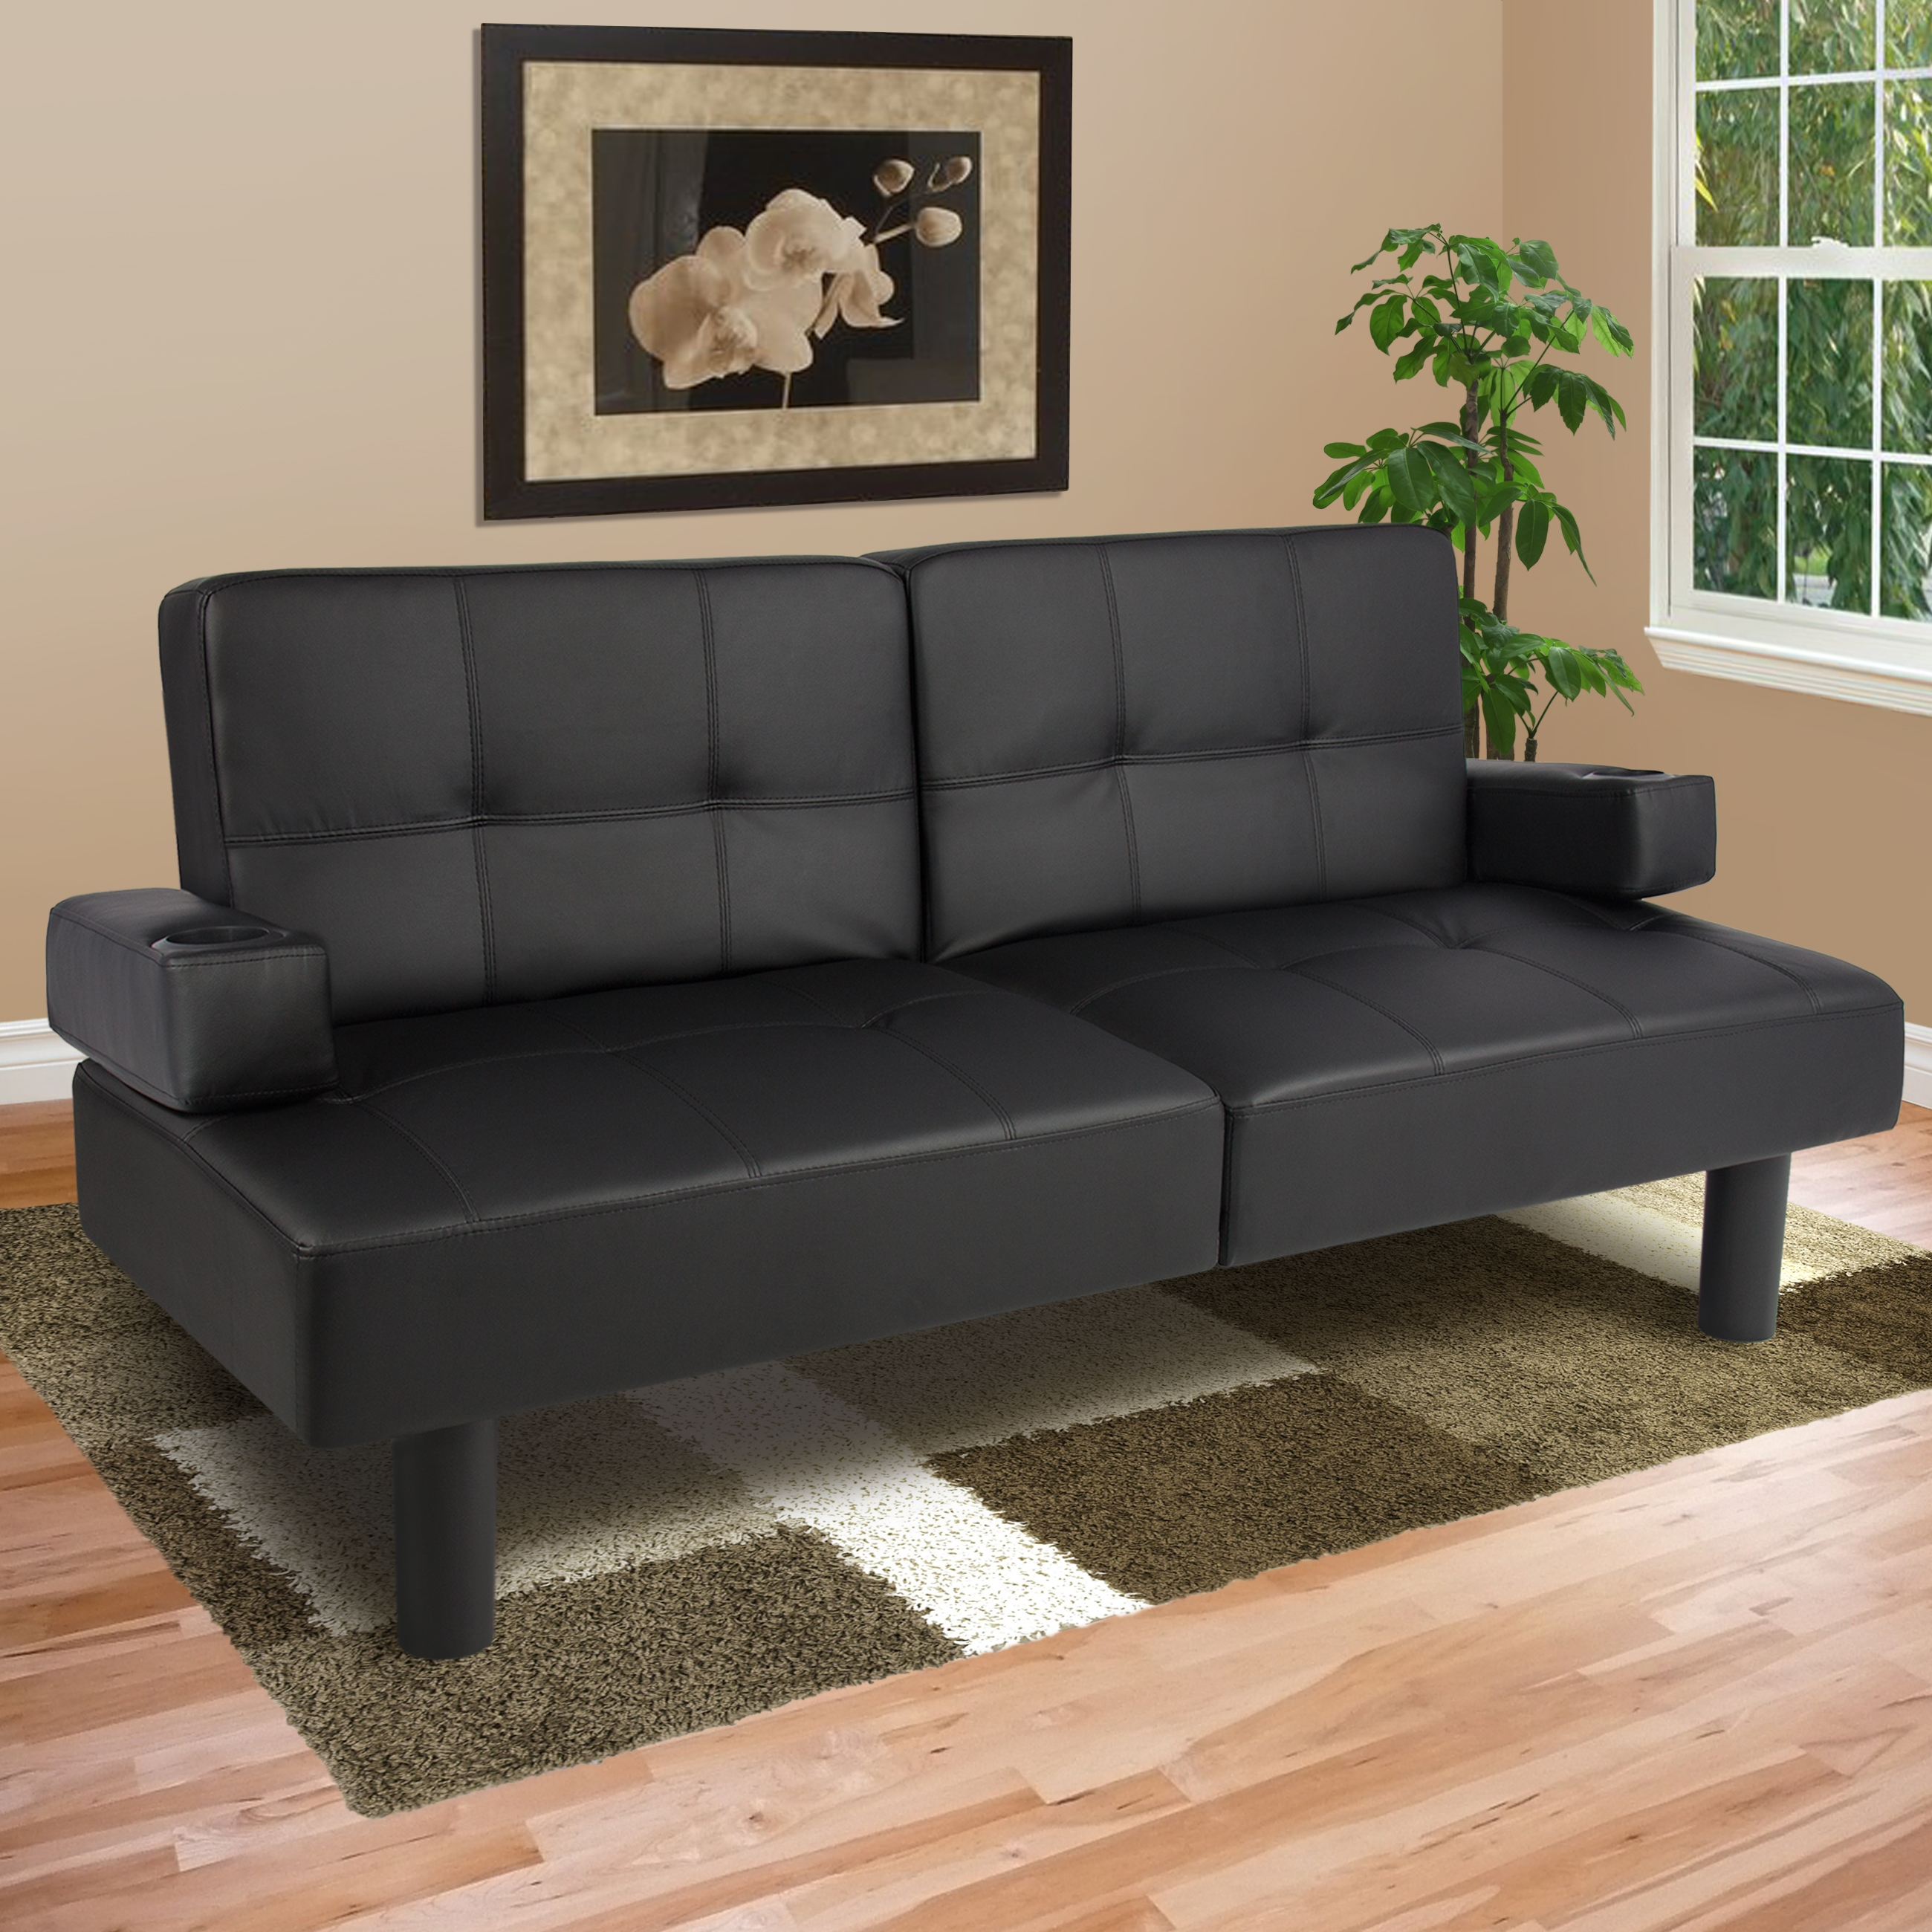 Leather Faux Fold Down Futon Sofa Bed Couch Sleeper Furniture Regarding Convertible Sofa Chair Bed (Image 8 of 15)